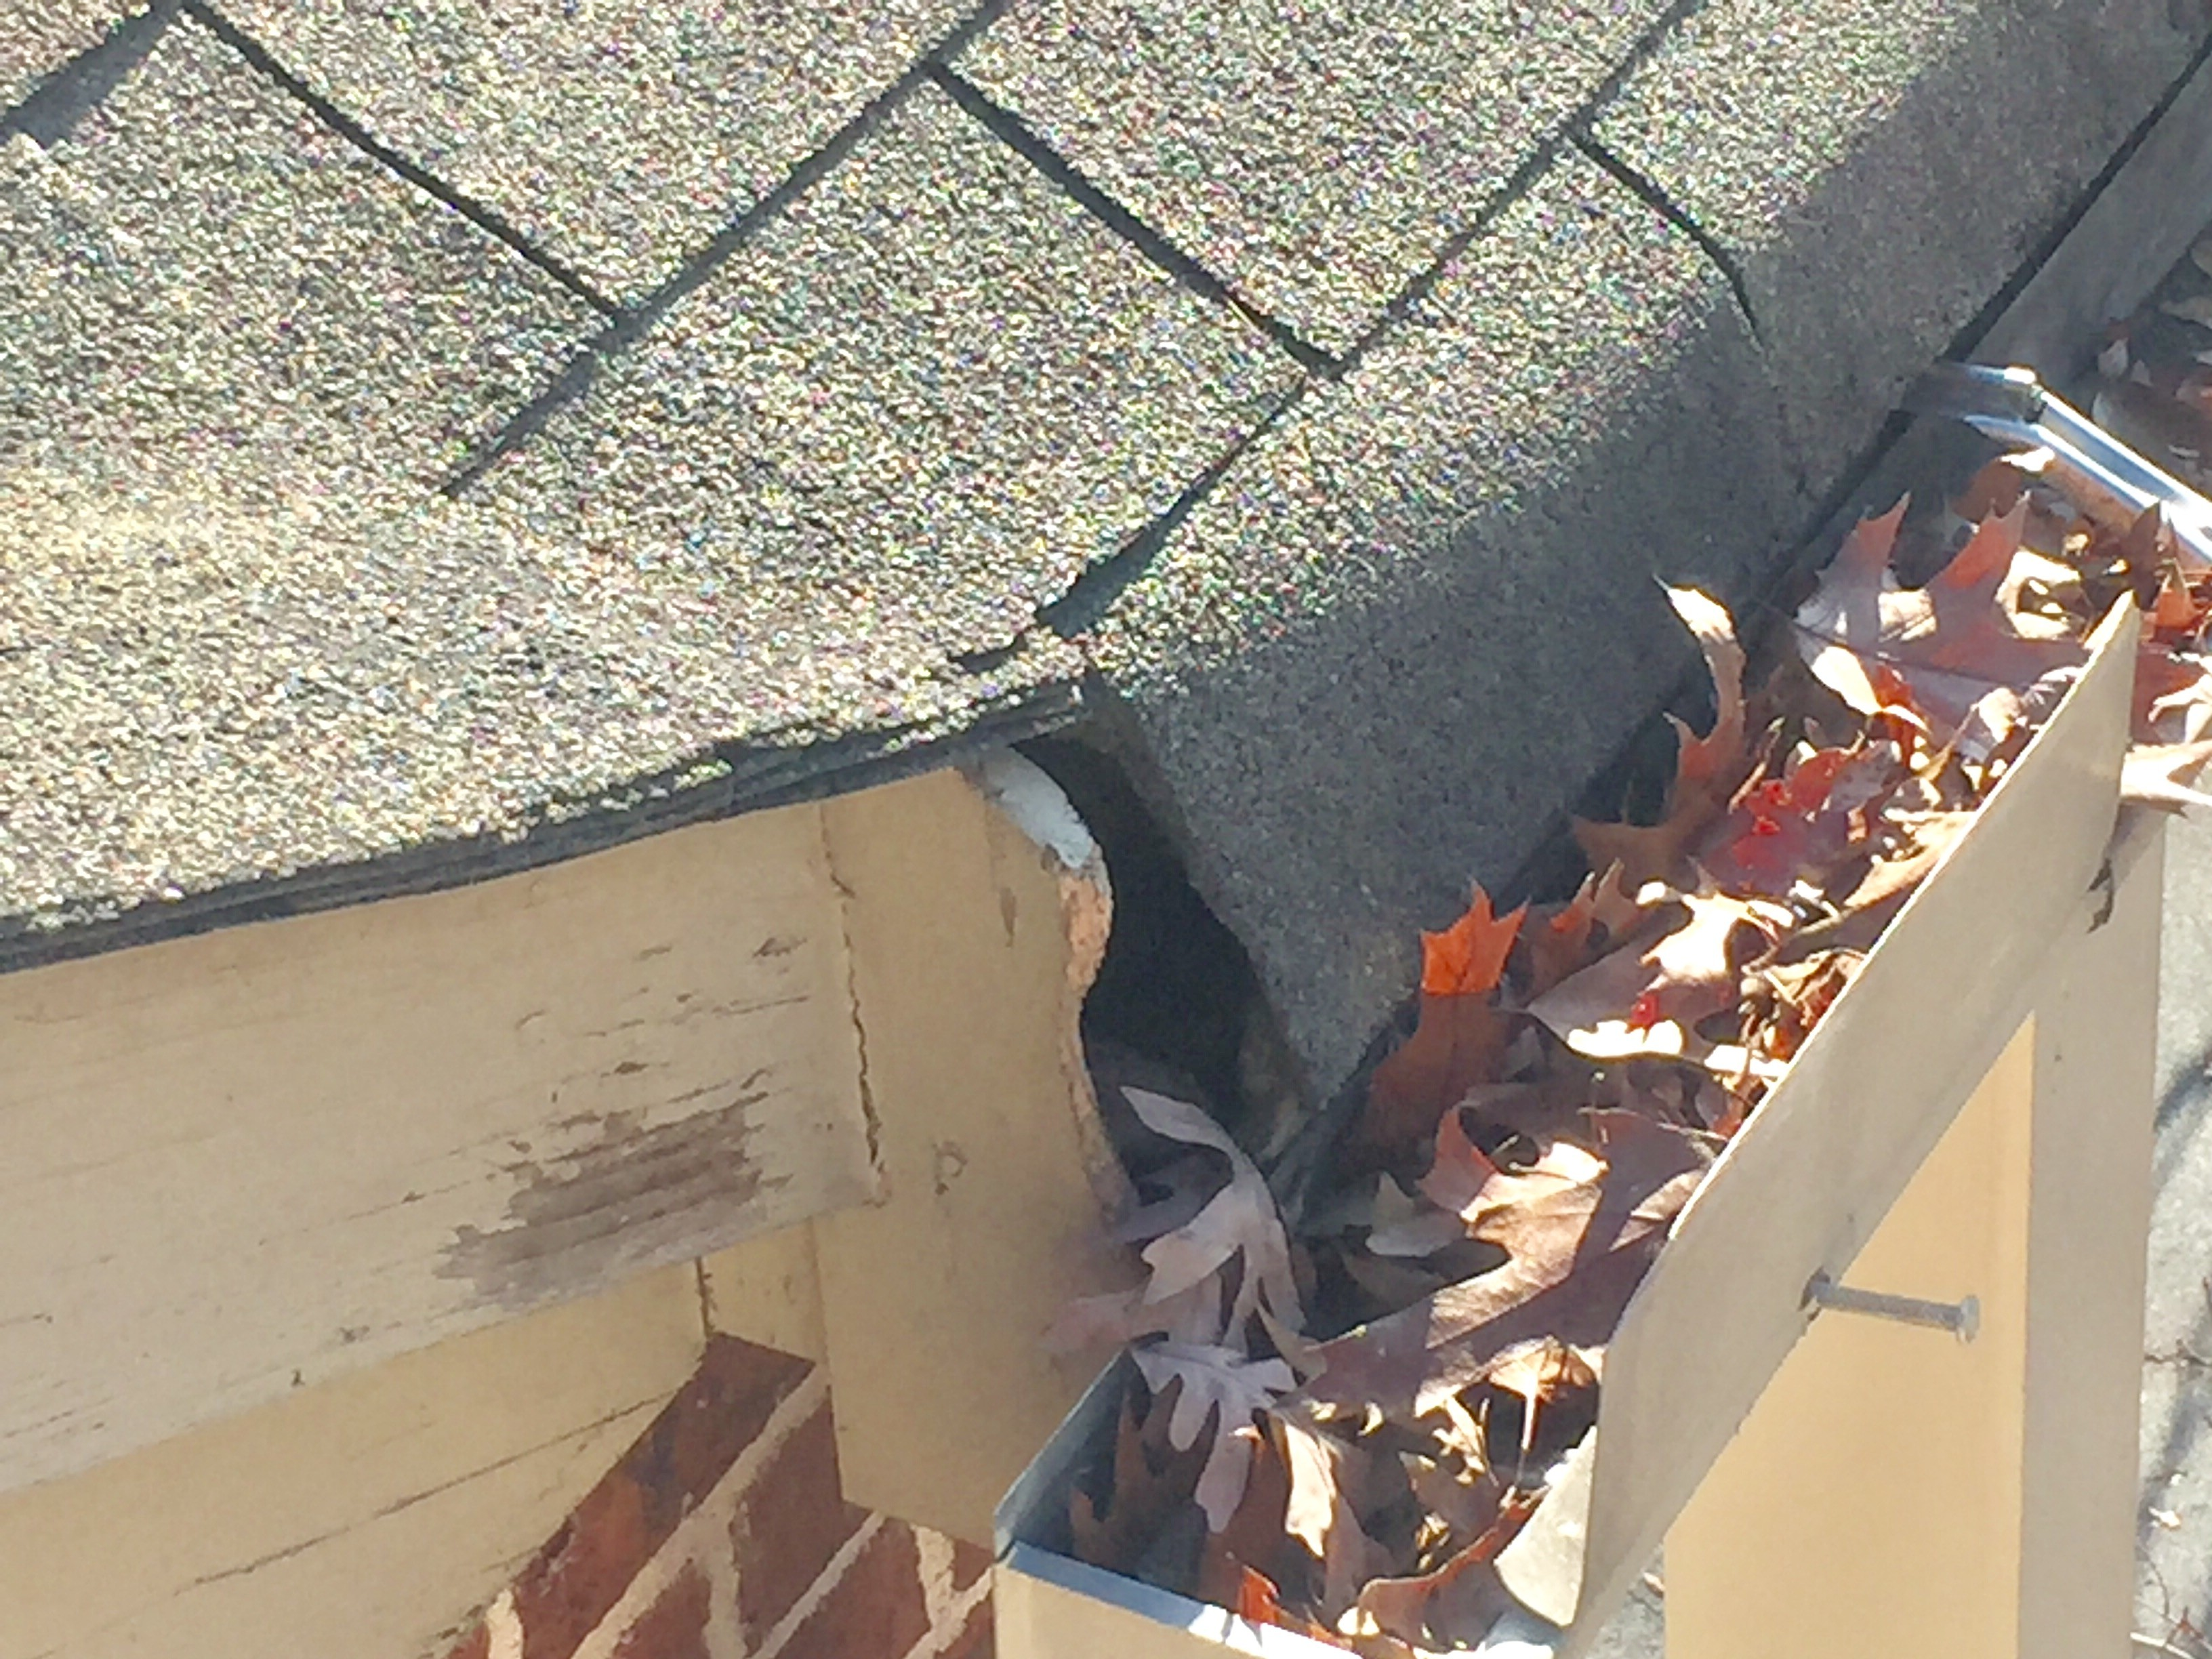 gutters-clogged